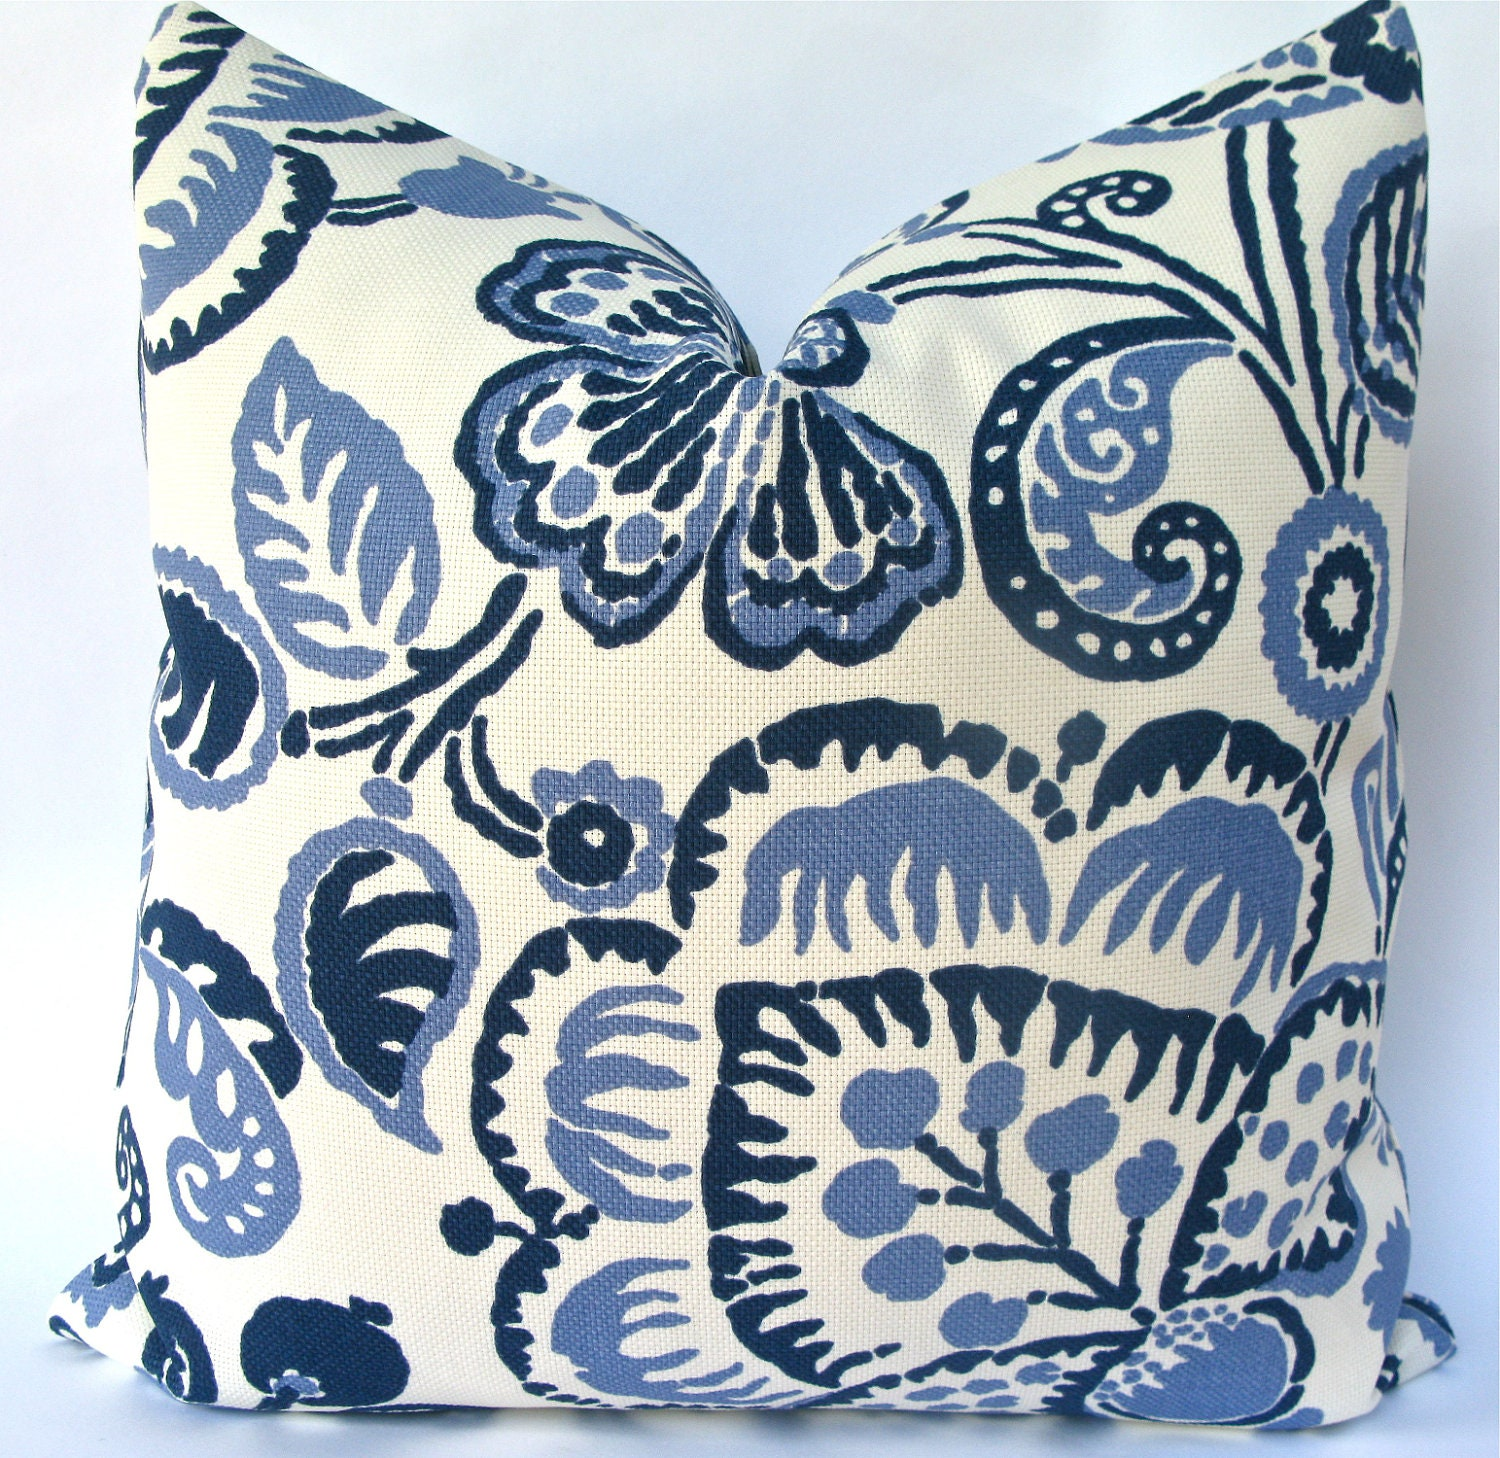 Large Decorative Outdoor Pillows : Decorative Indoor Outdoor Pillow Cover Large Floral Leaf